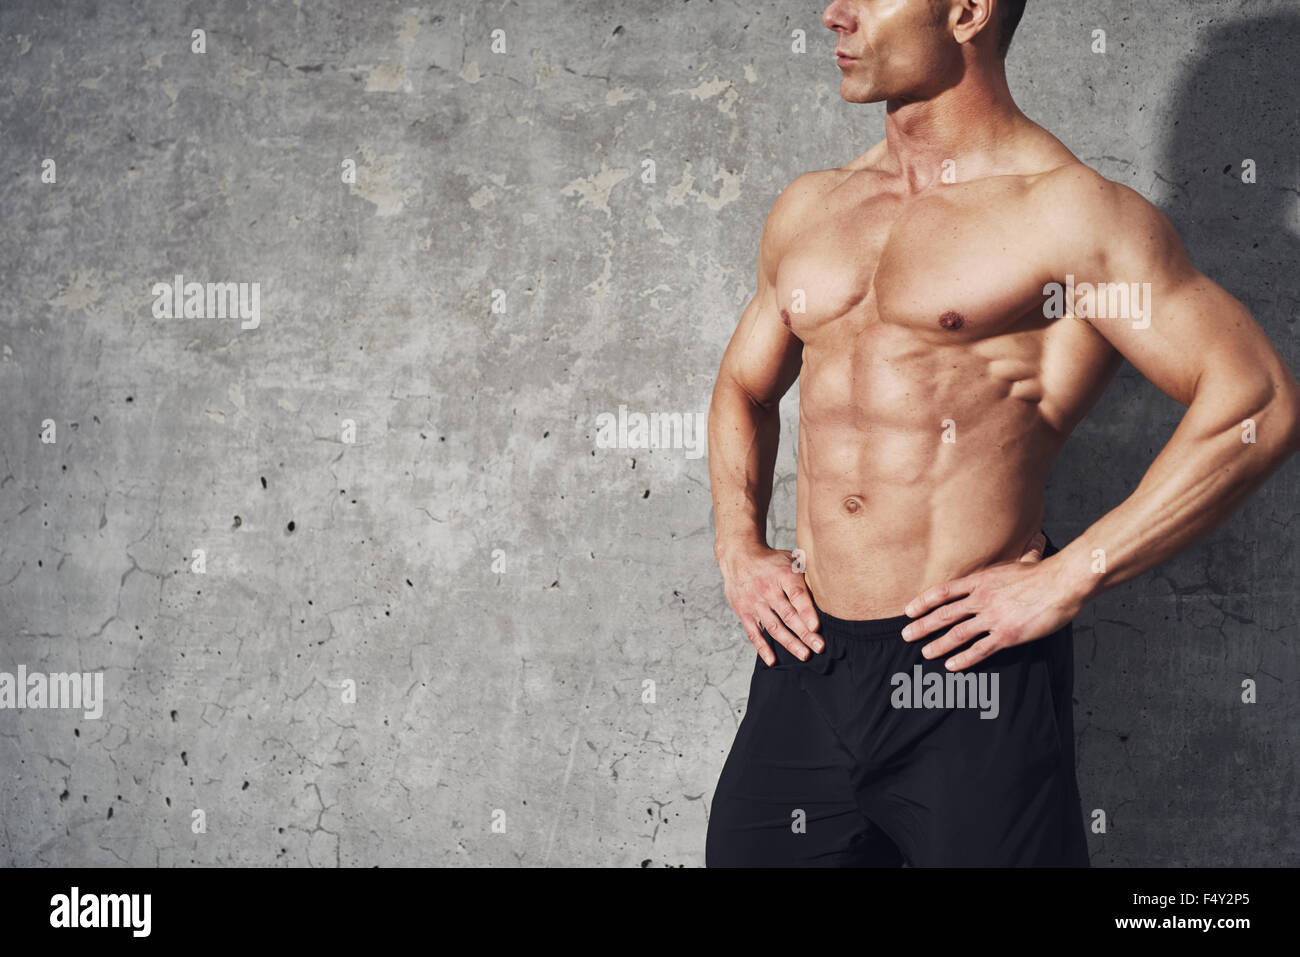 Fitness portrait half body six pack no shirt, fitness concept, room for copyspace, fit and healthy muscular male - Stock Image